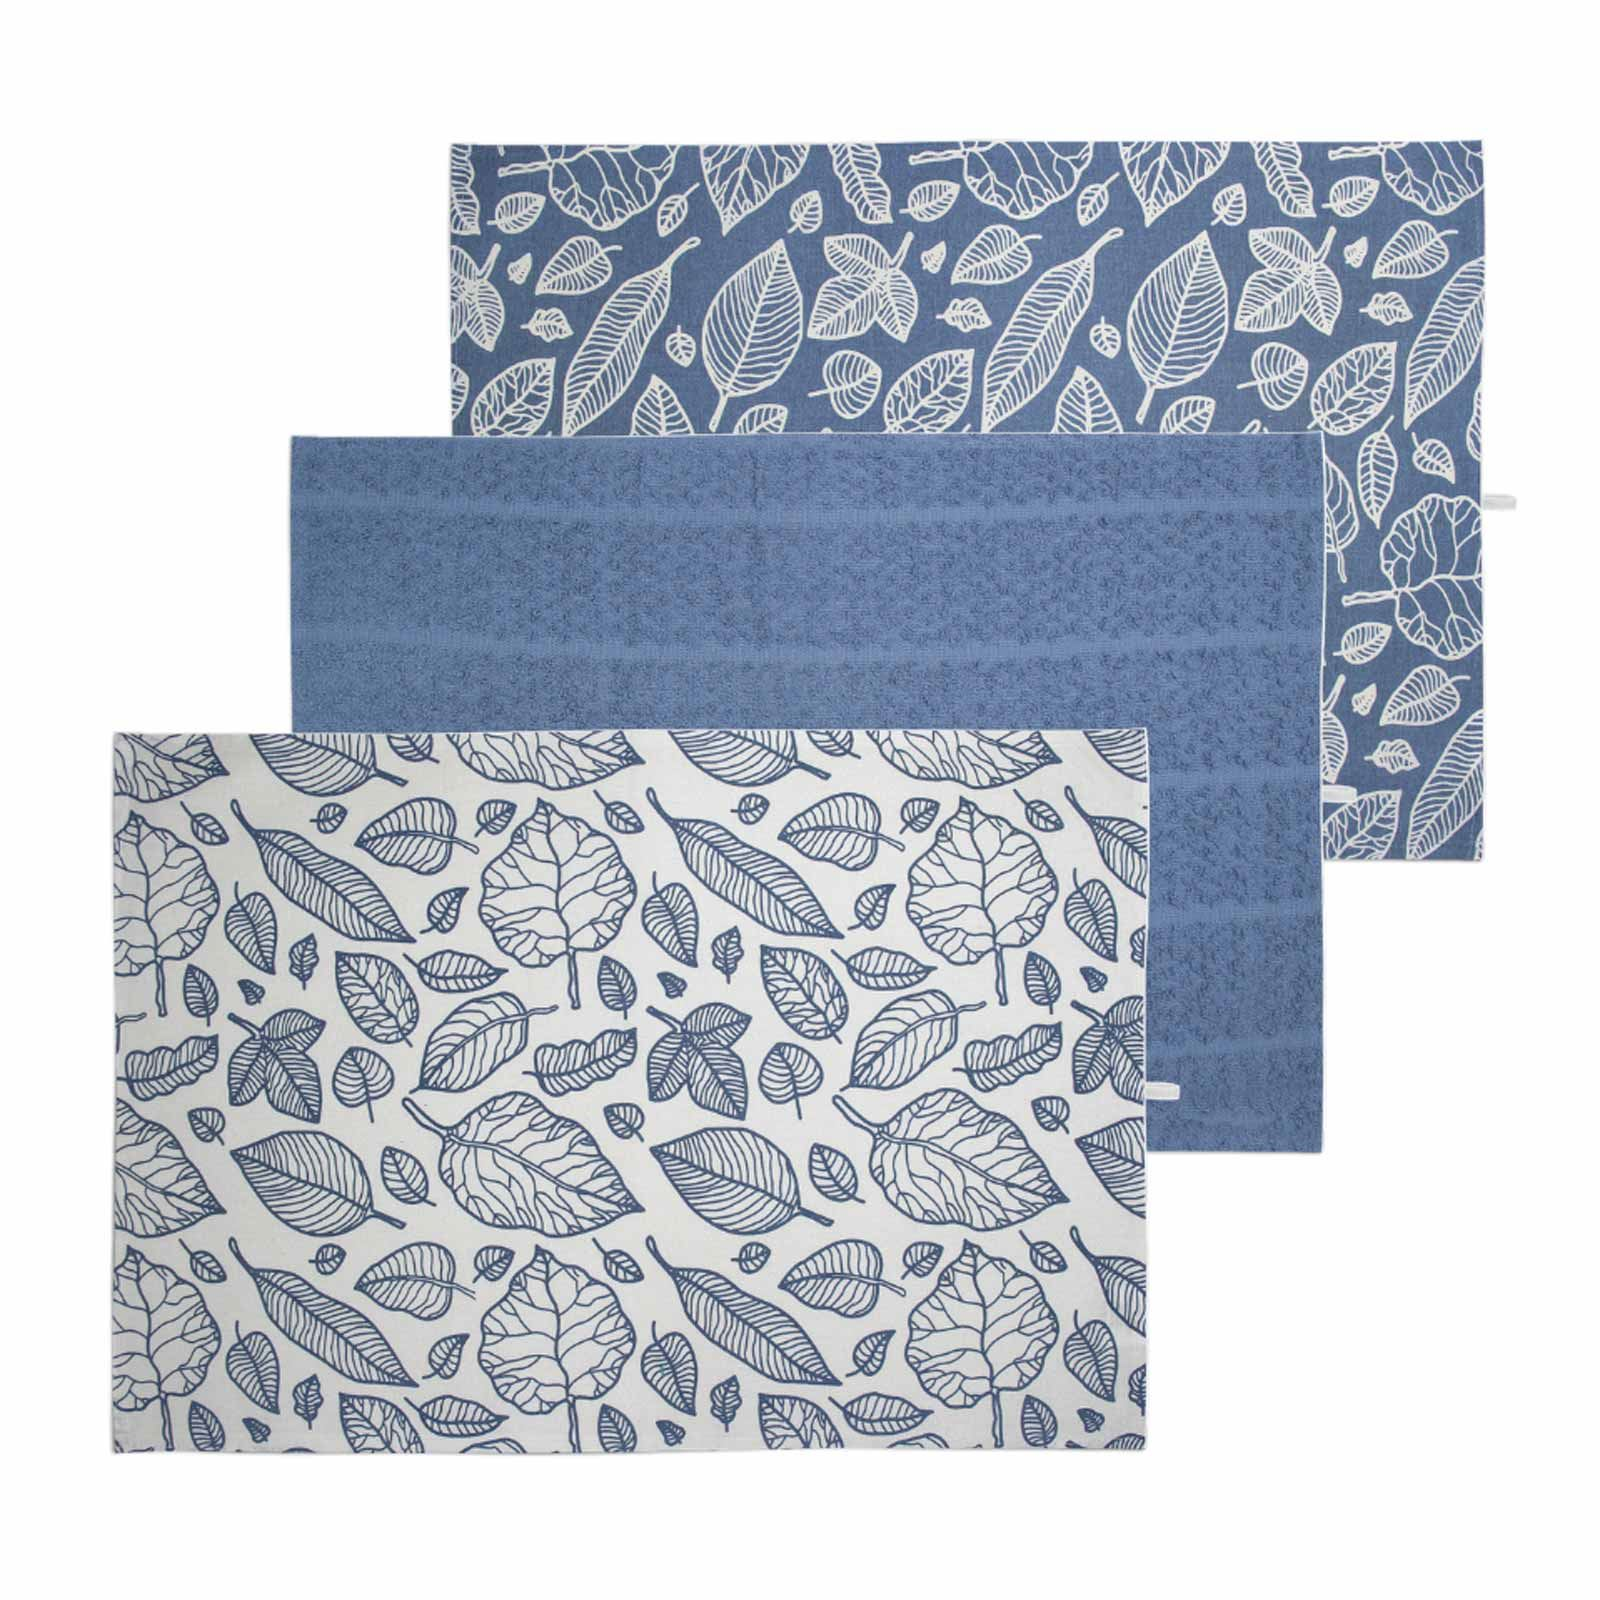 Pack-of-3-Tea-Towels-100-Cotton-Kitchen-Dish-Towel-Drying-Set thumbnail 4